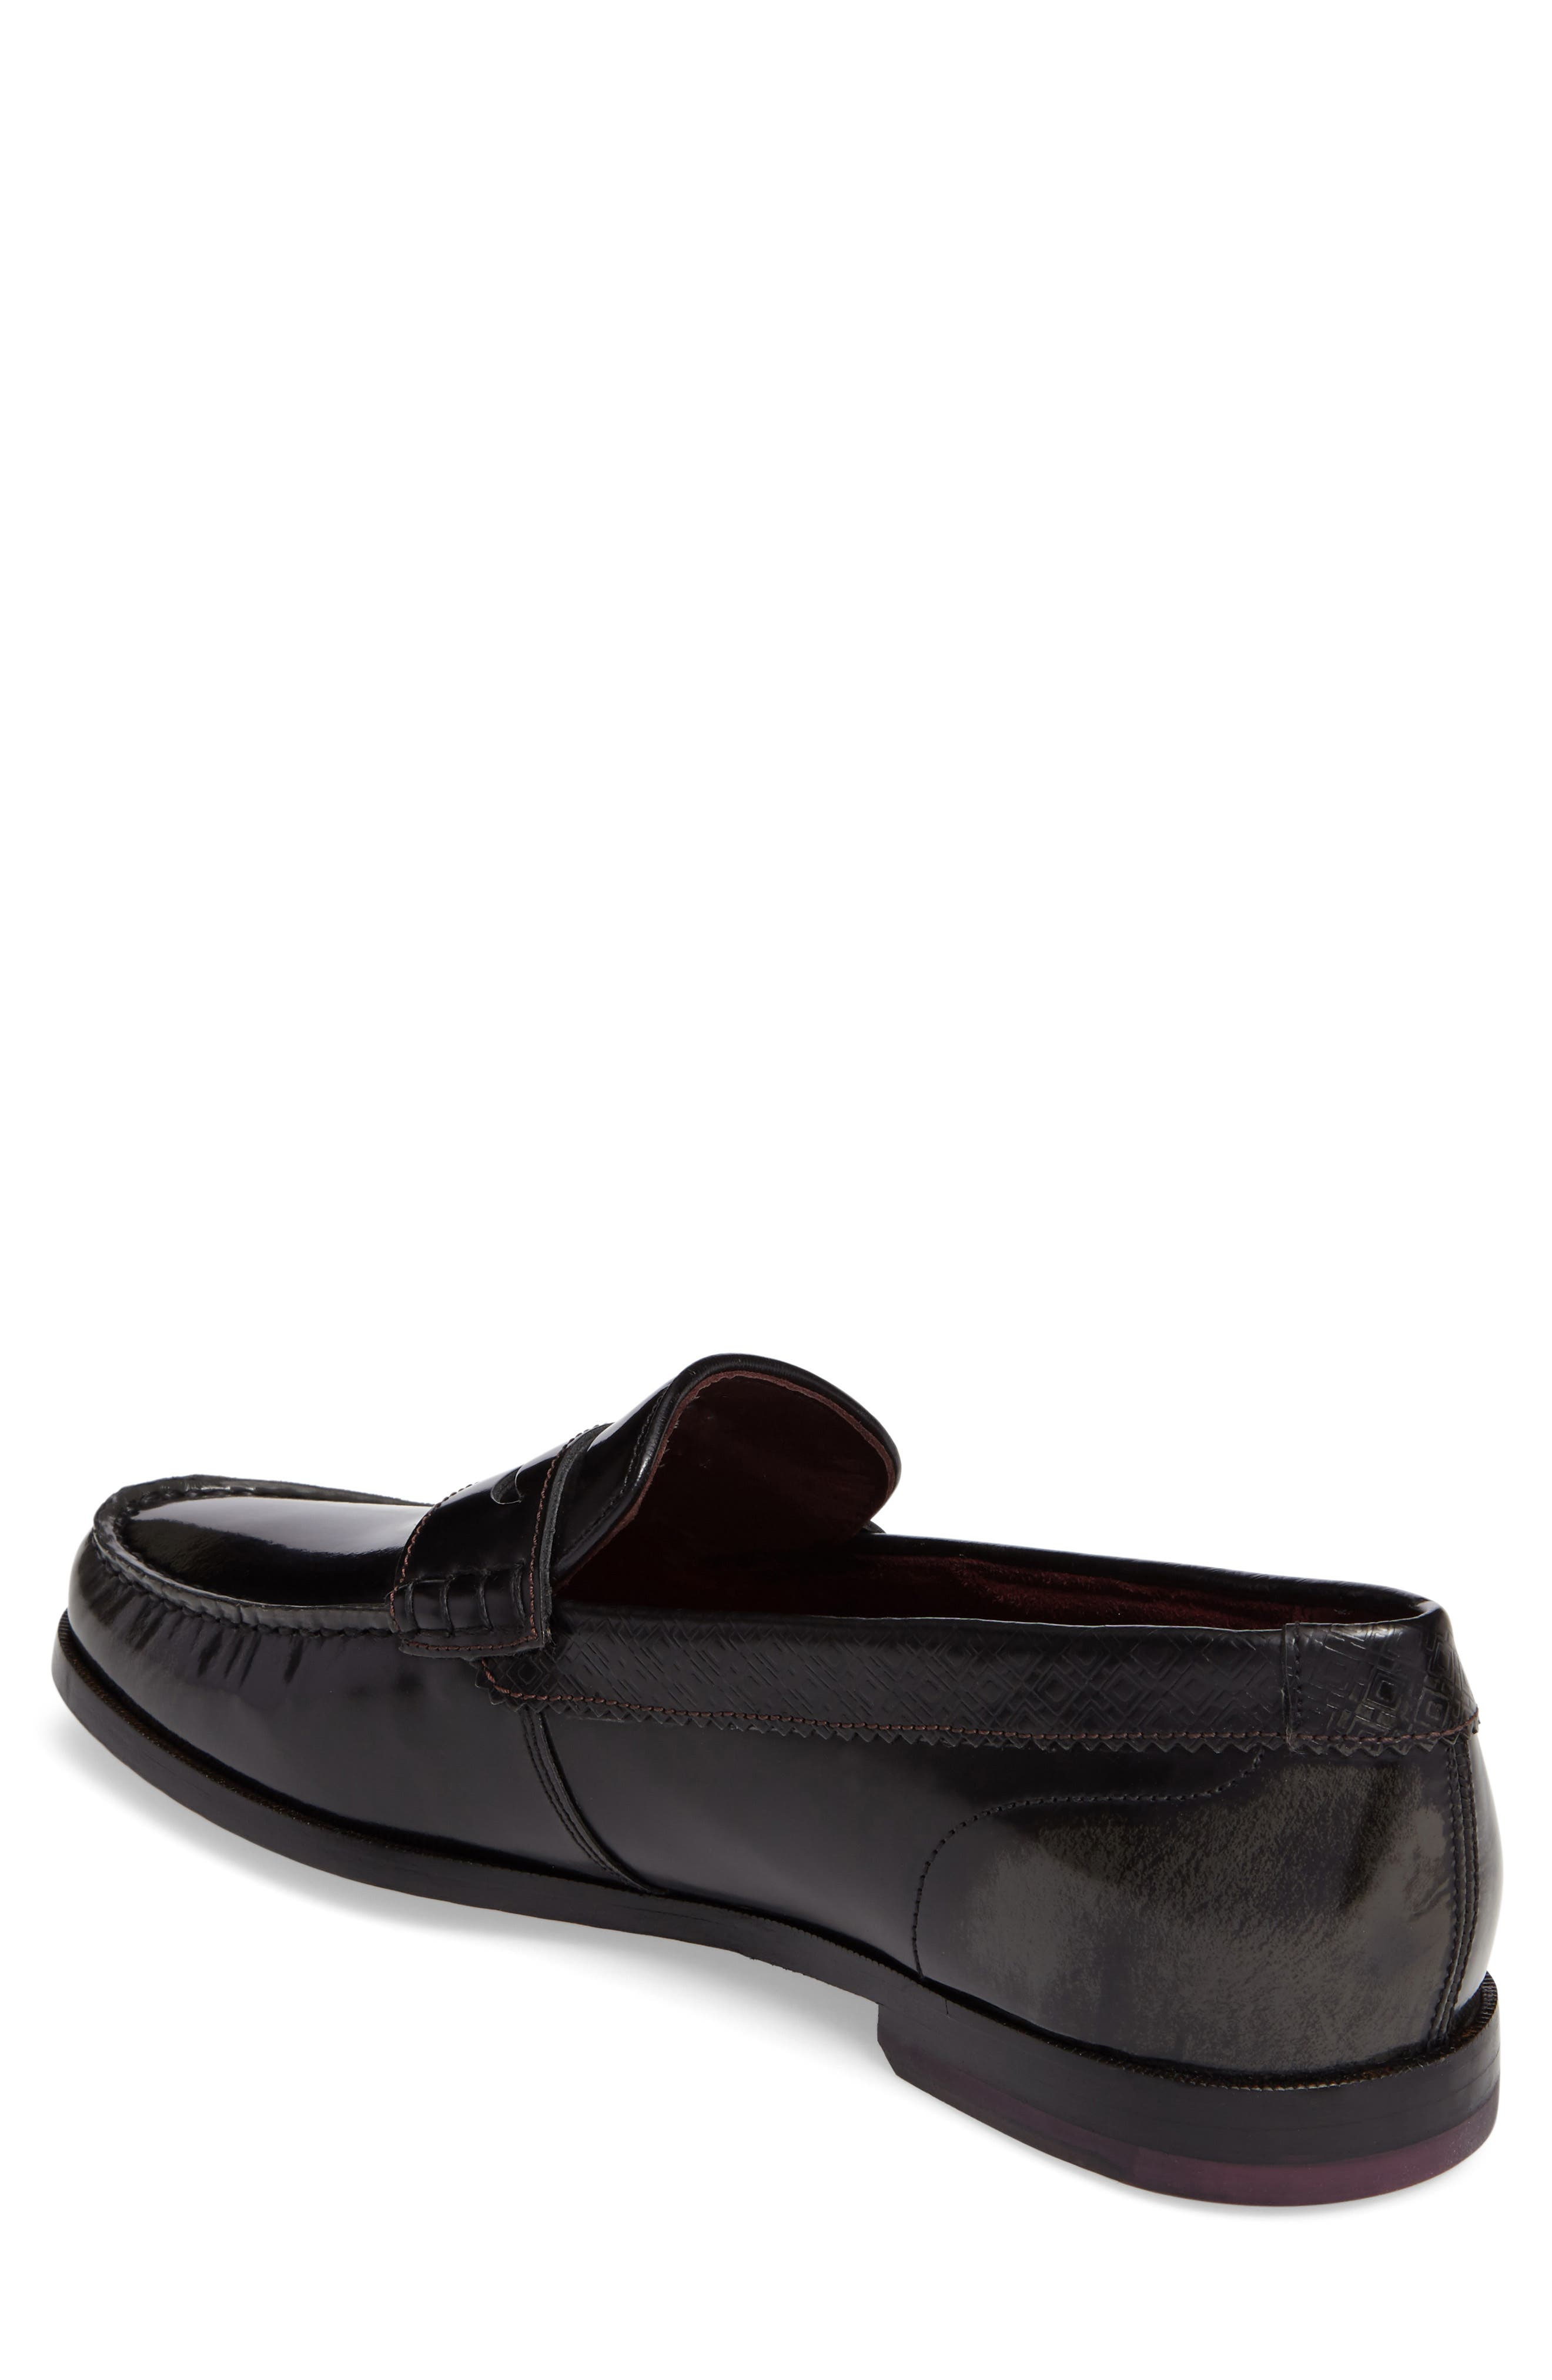 Rommeo Penny Loafer,                             Alternate thumbnail 3, color,                             028